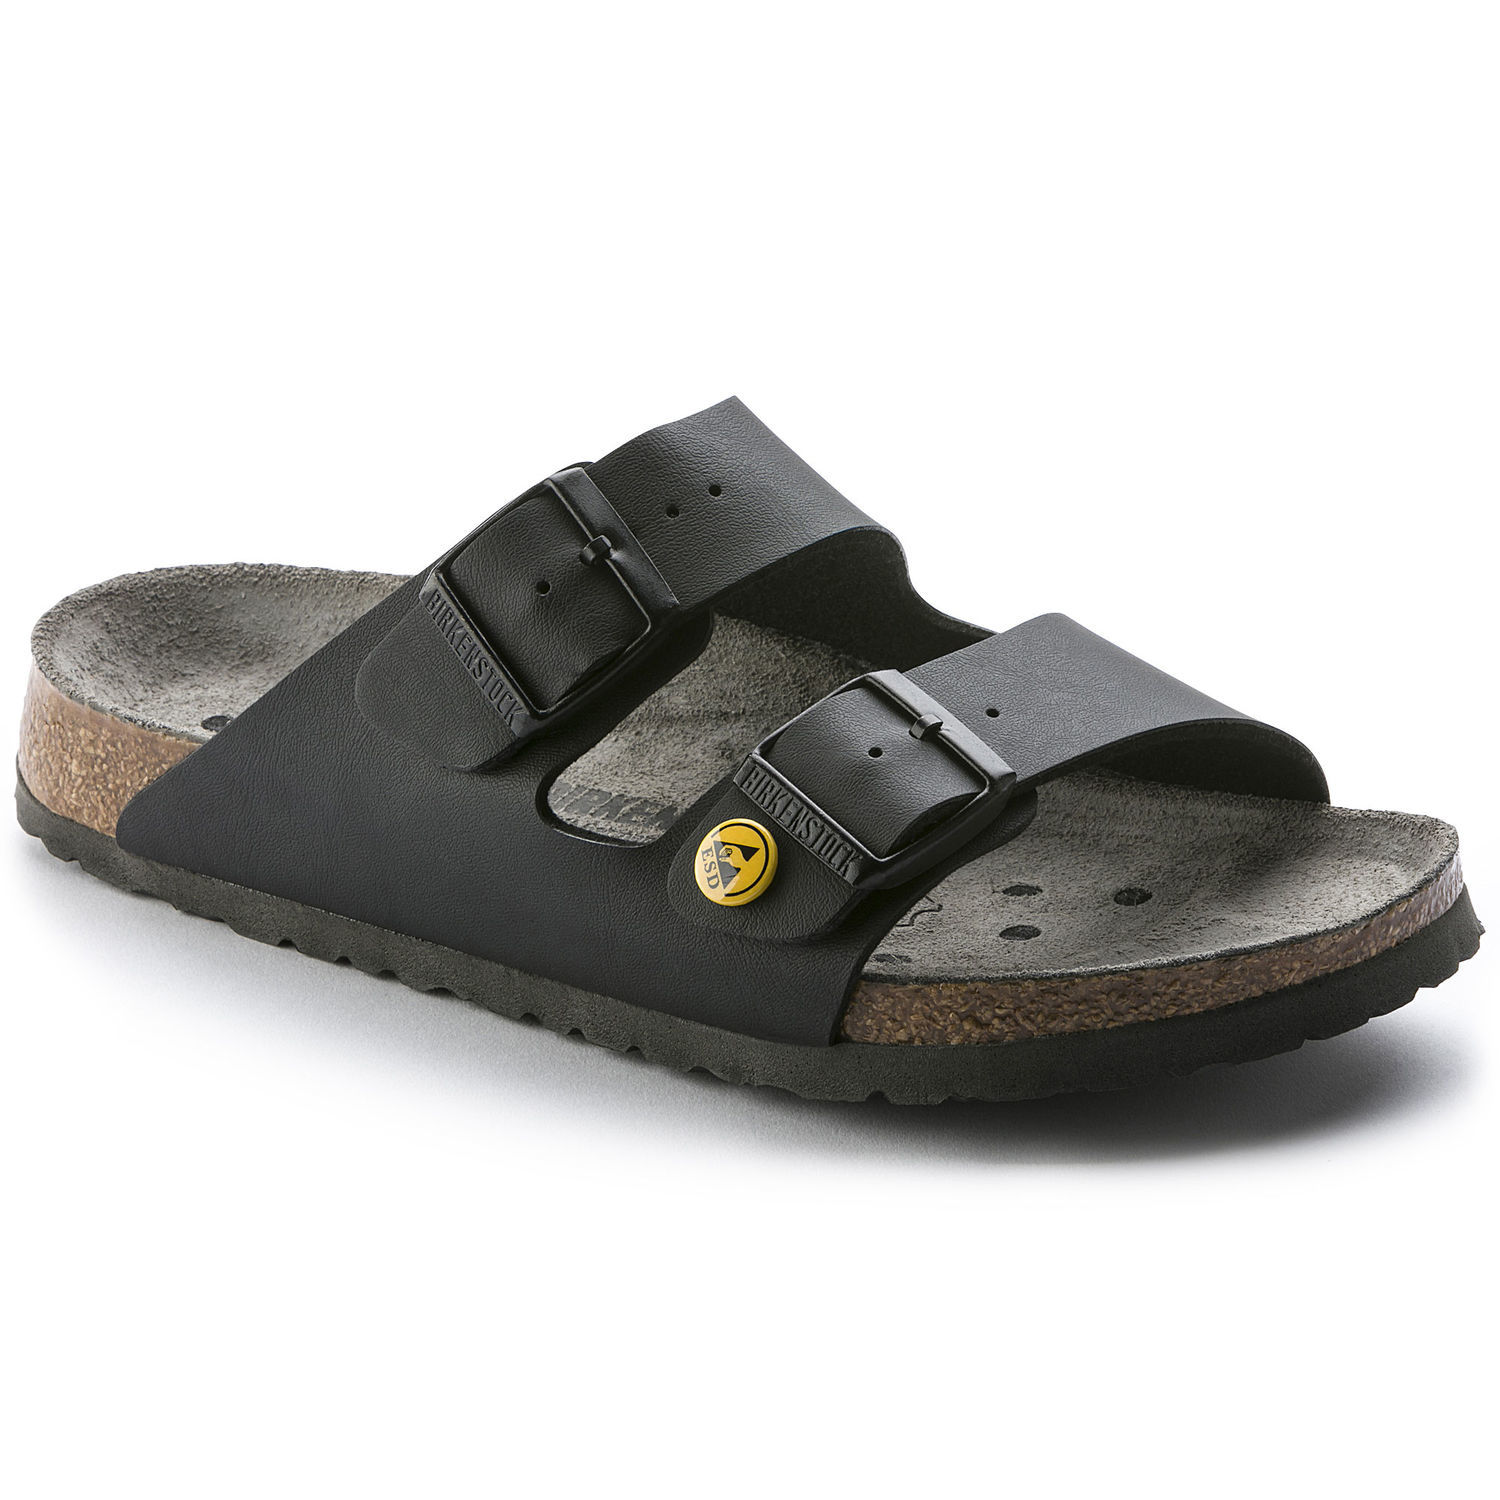 Image of   Sort Arizona ESD sandal fra Birkenstock - 38